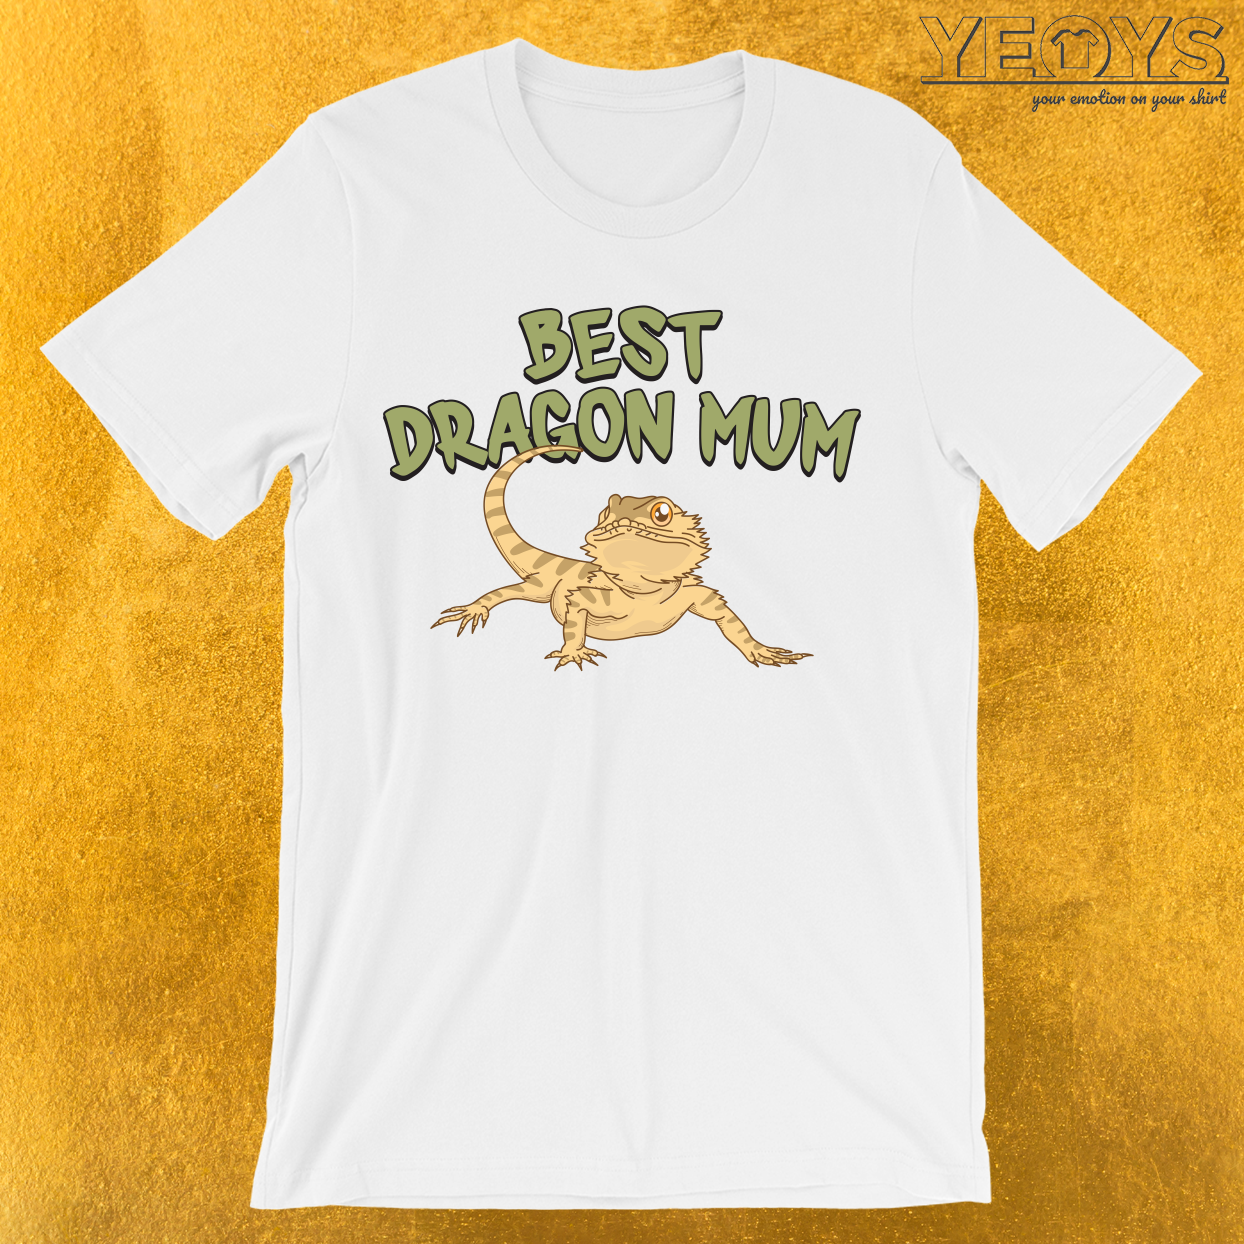 Best Dragon Mom T-Shirt